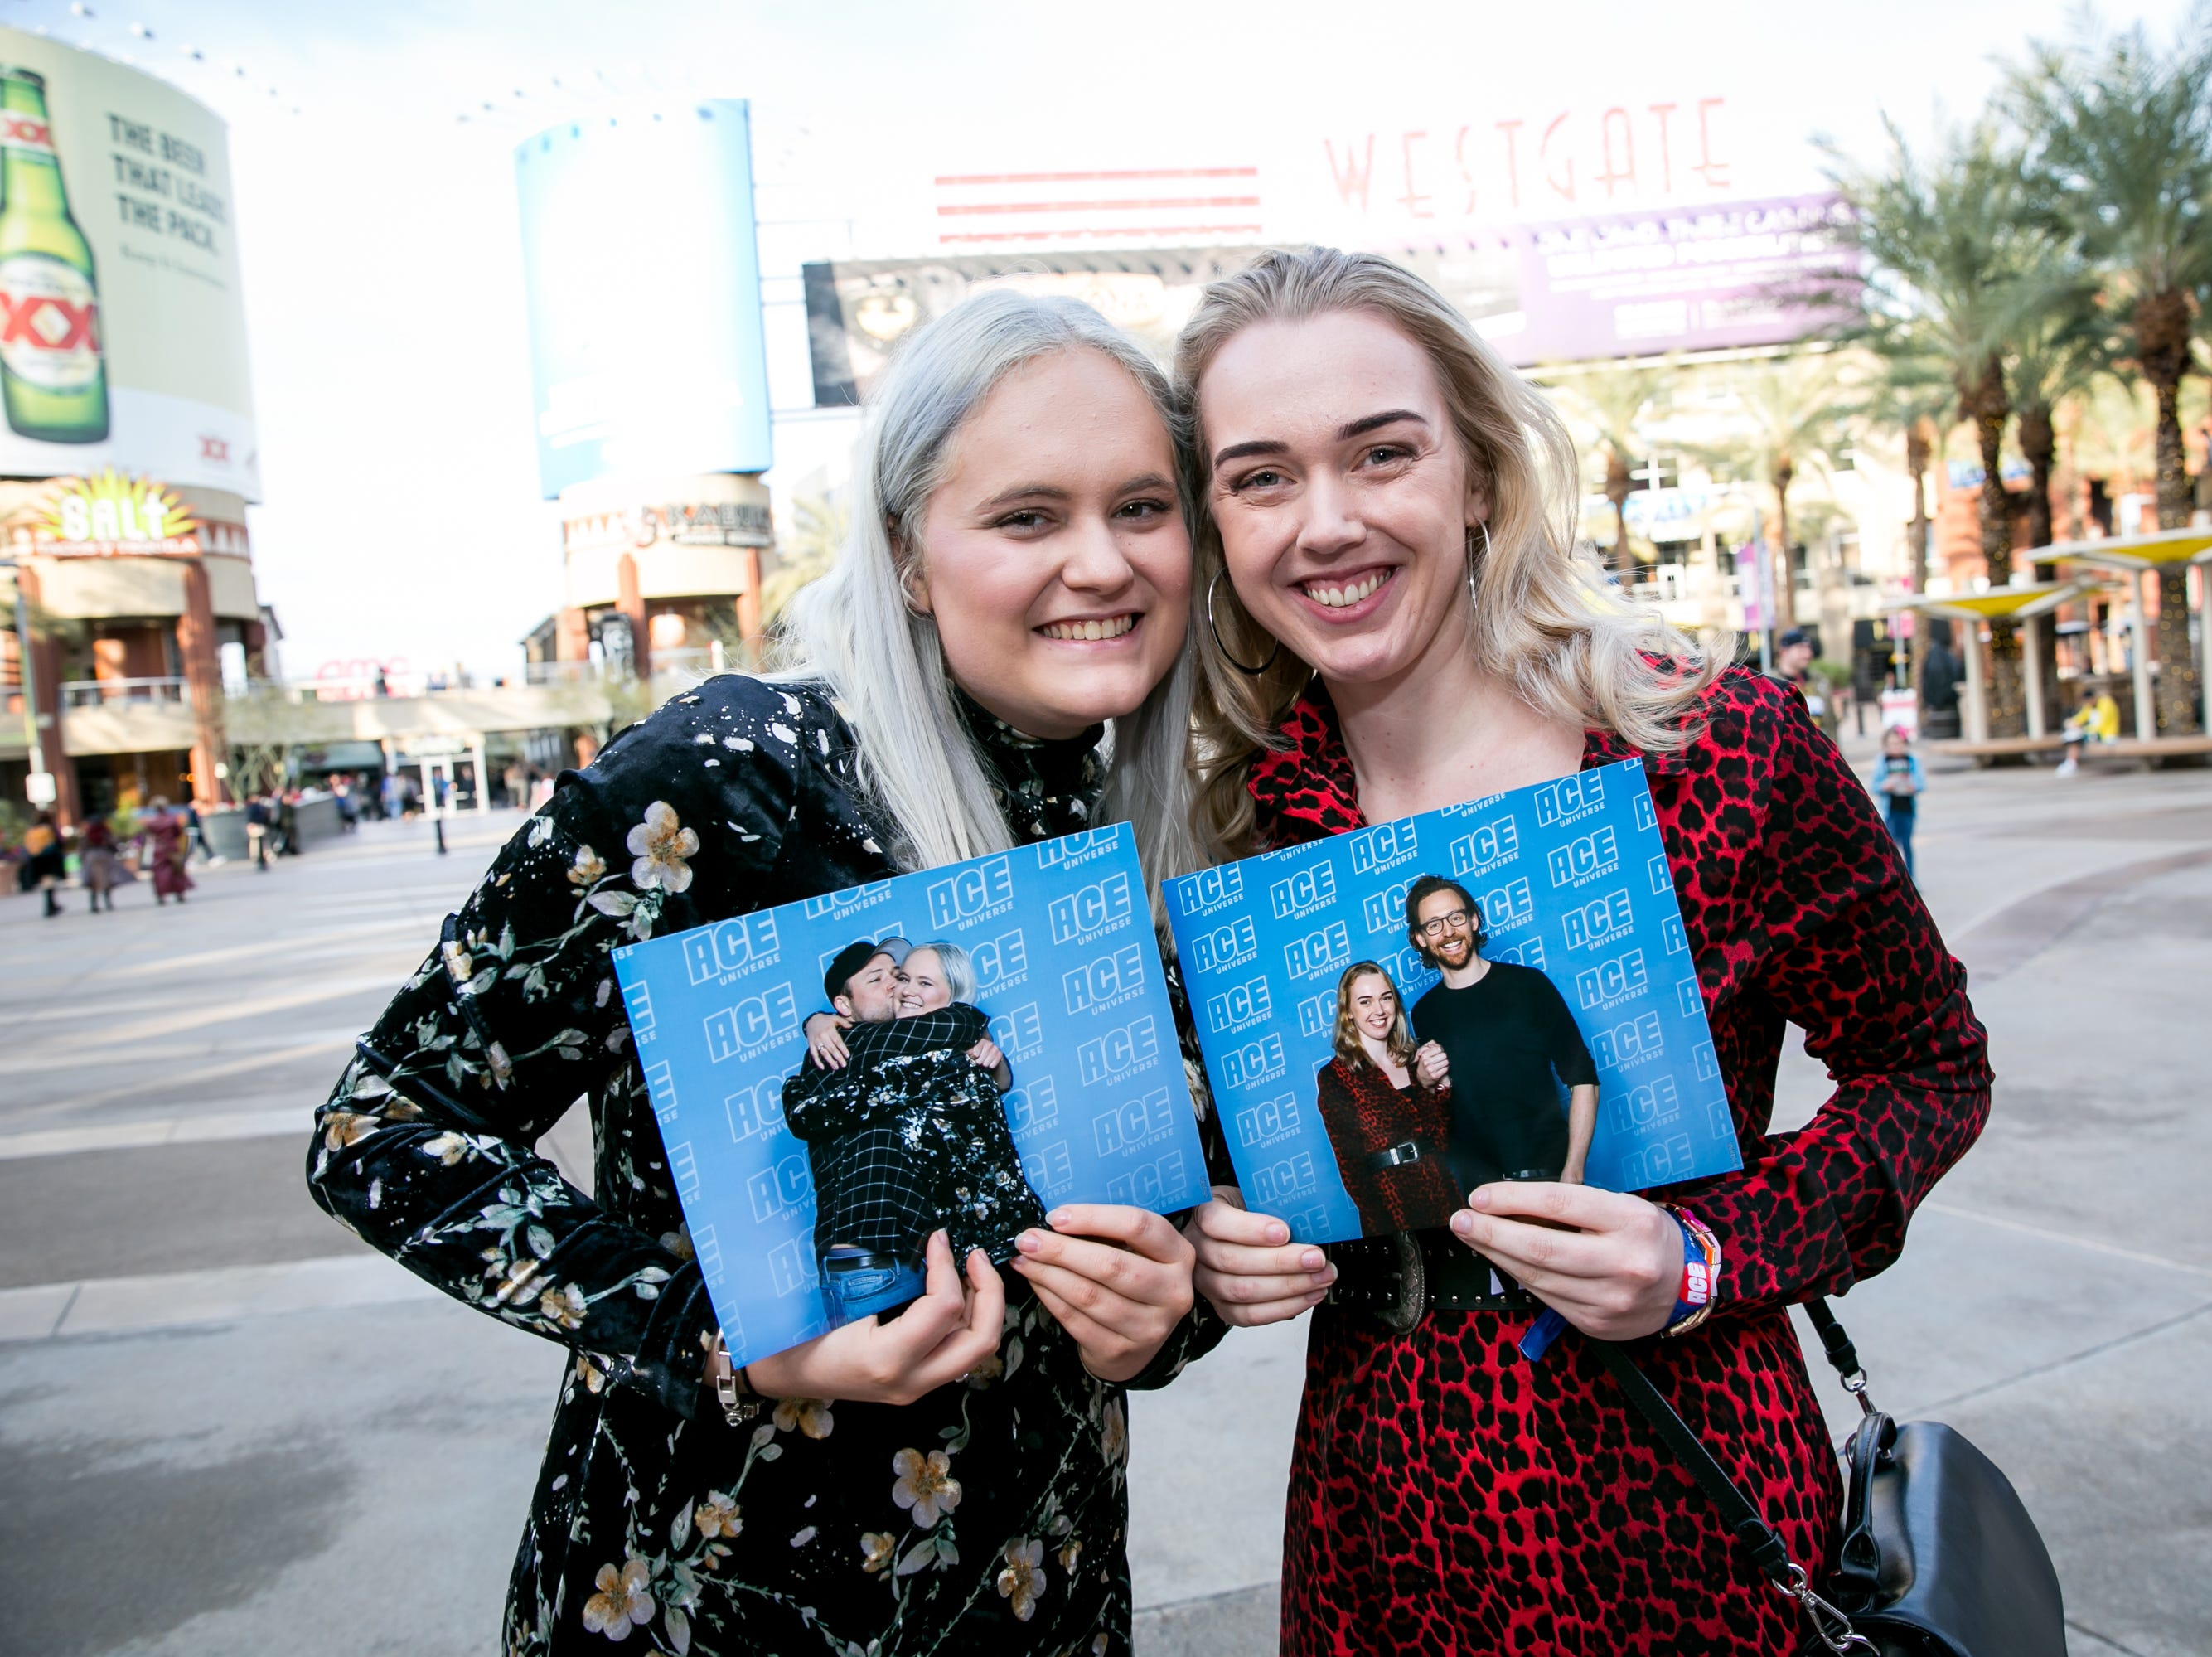 These ladies scored big at the meet and greets during Ace Comic Con at Gila River Arena in Glendale on Sunday, Jan. 13, 2019.